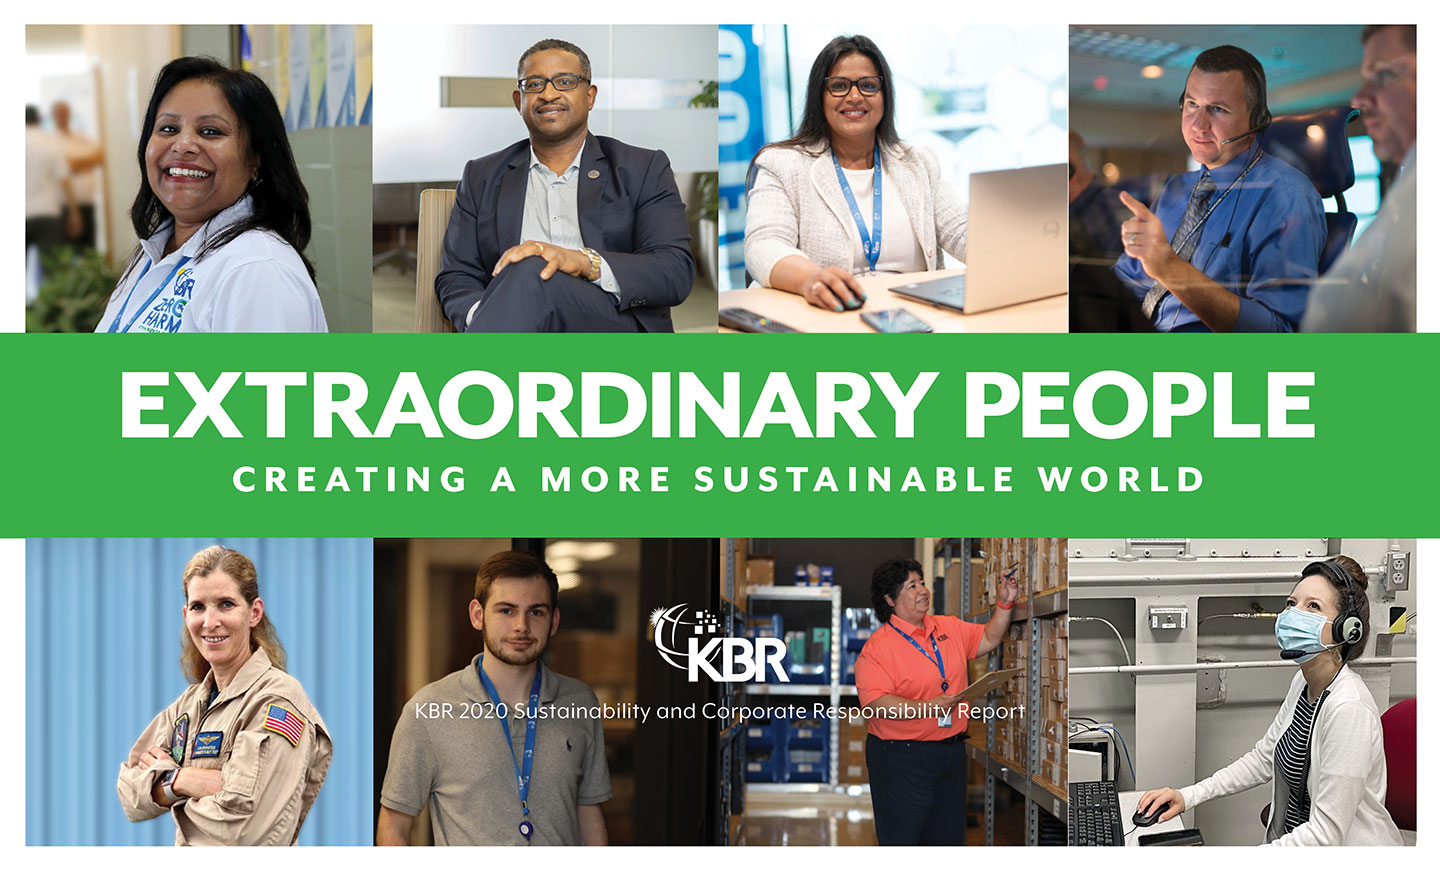 KBR Sustainability and Corporate Responsibility Report 2020